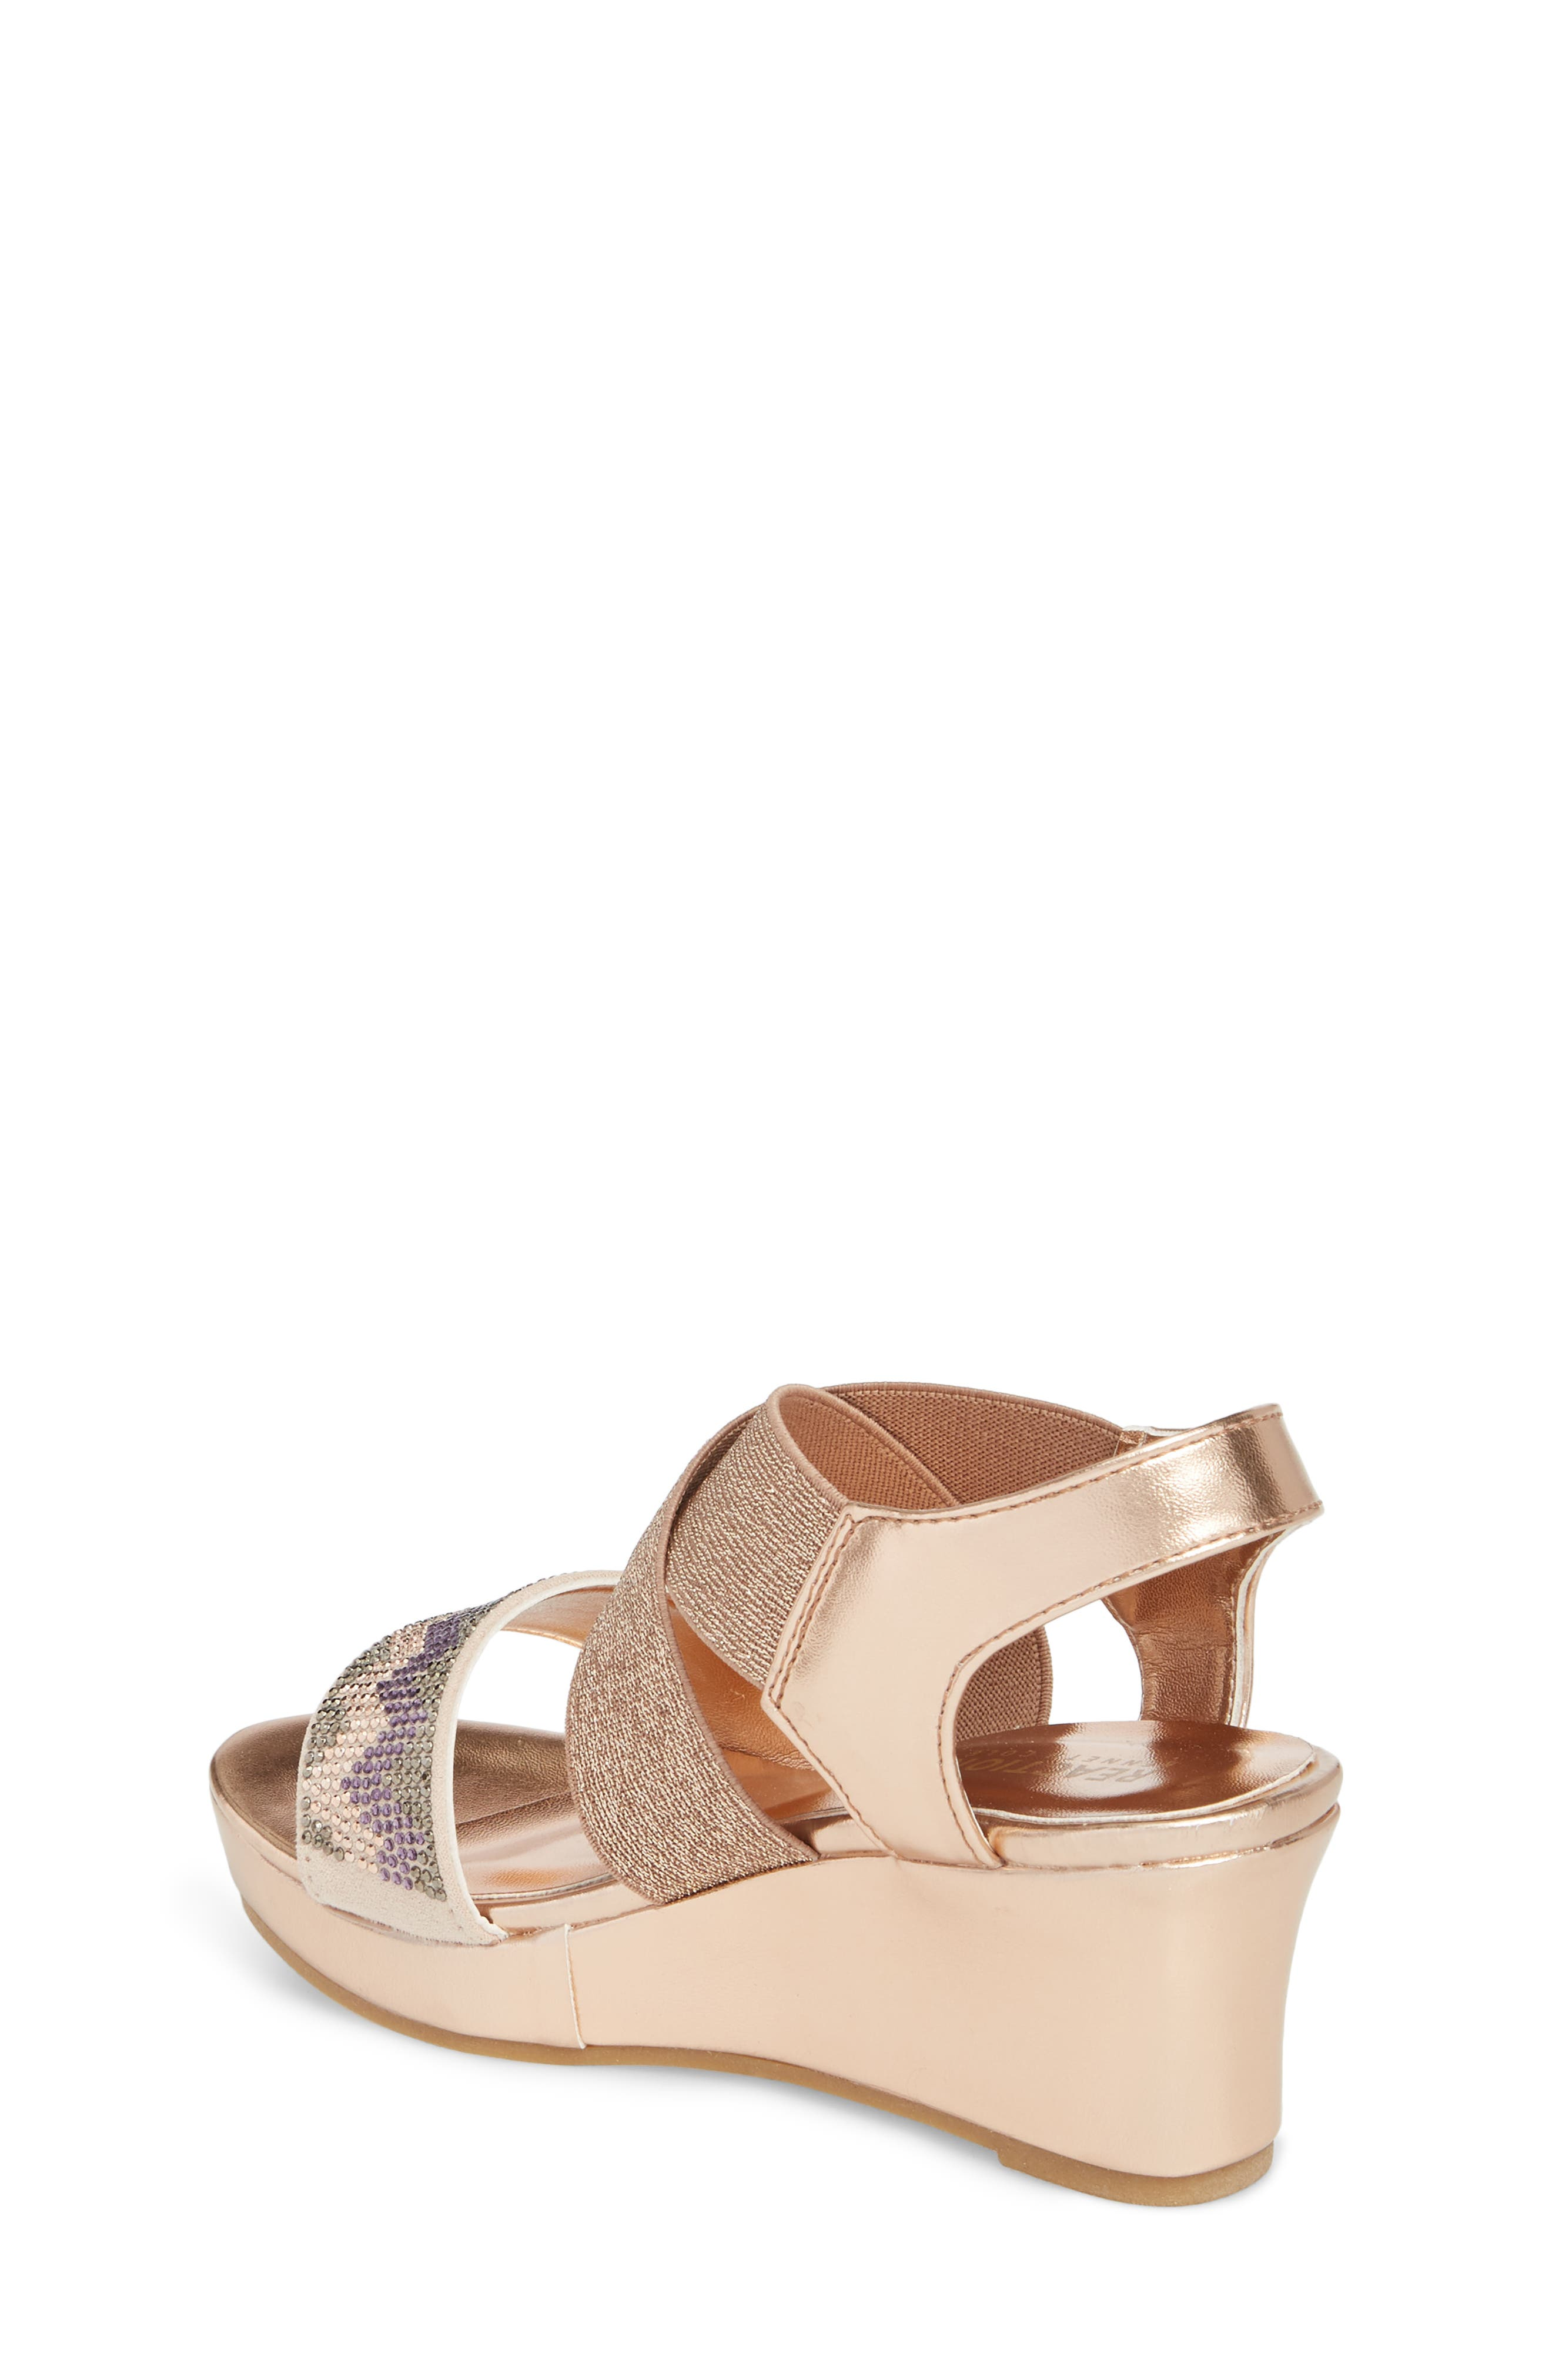 Reaction Kenneth Cole Reed Mamba Embellished Wedge Sandal,                             Alternate thumbnail 2, color,                             220